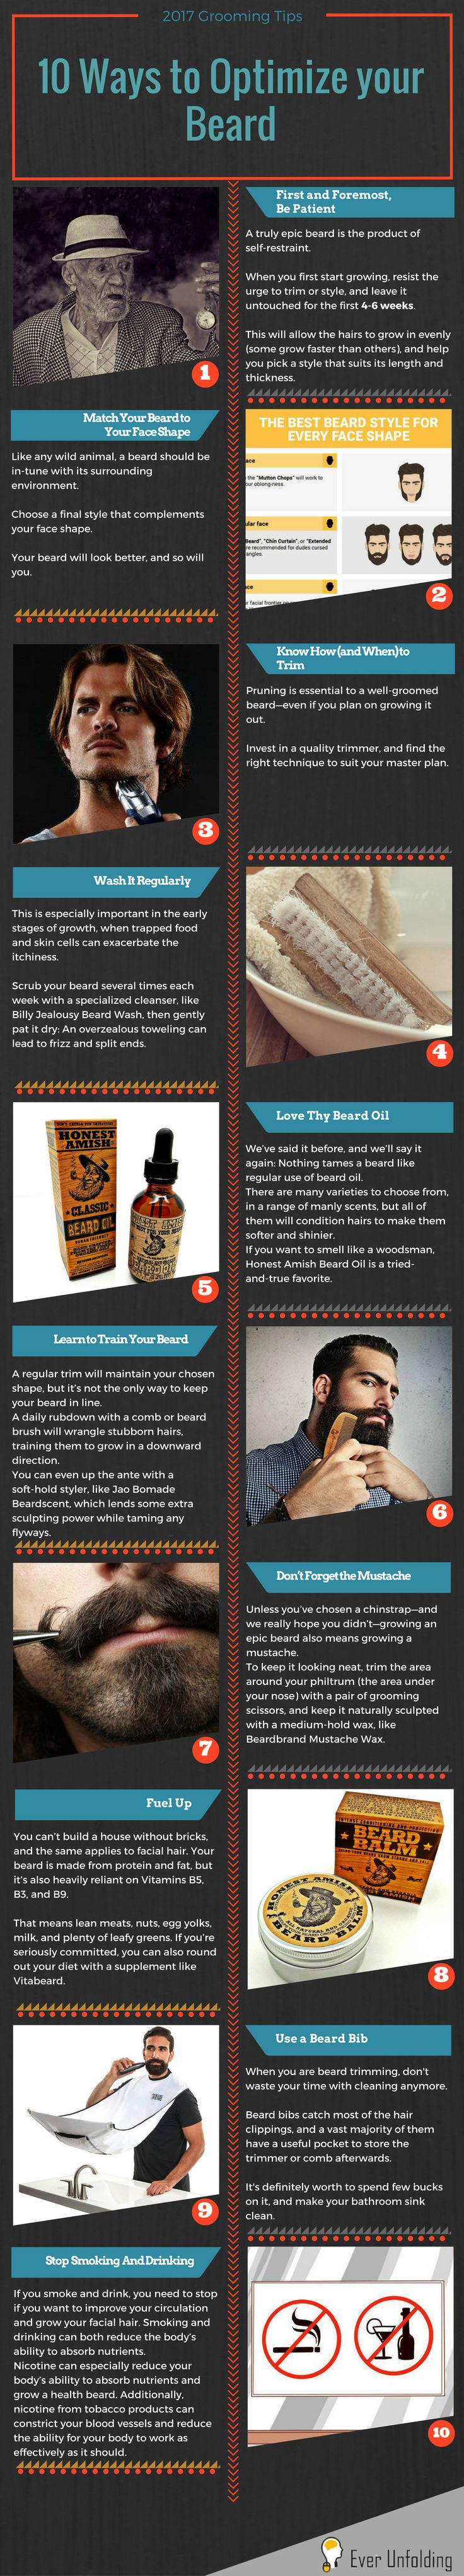 10 Ways to Optimize your Beard Infographics. Get your beard growth, beard care and beard maintenance to a brand new level! 2017 Beard Grooming Tips and more ~ http://ever-unfolding.net/best-beard-trimmer-reviews/